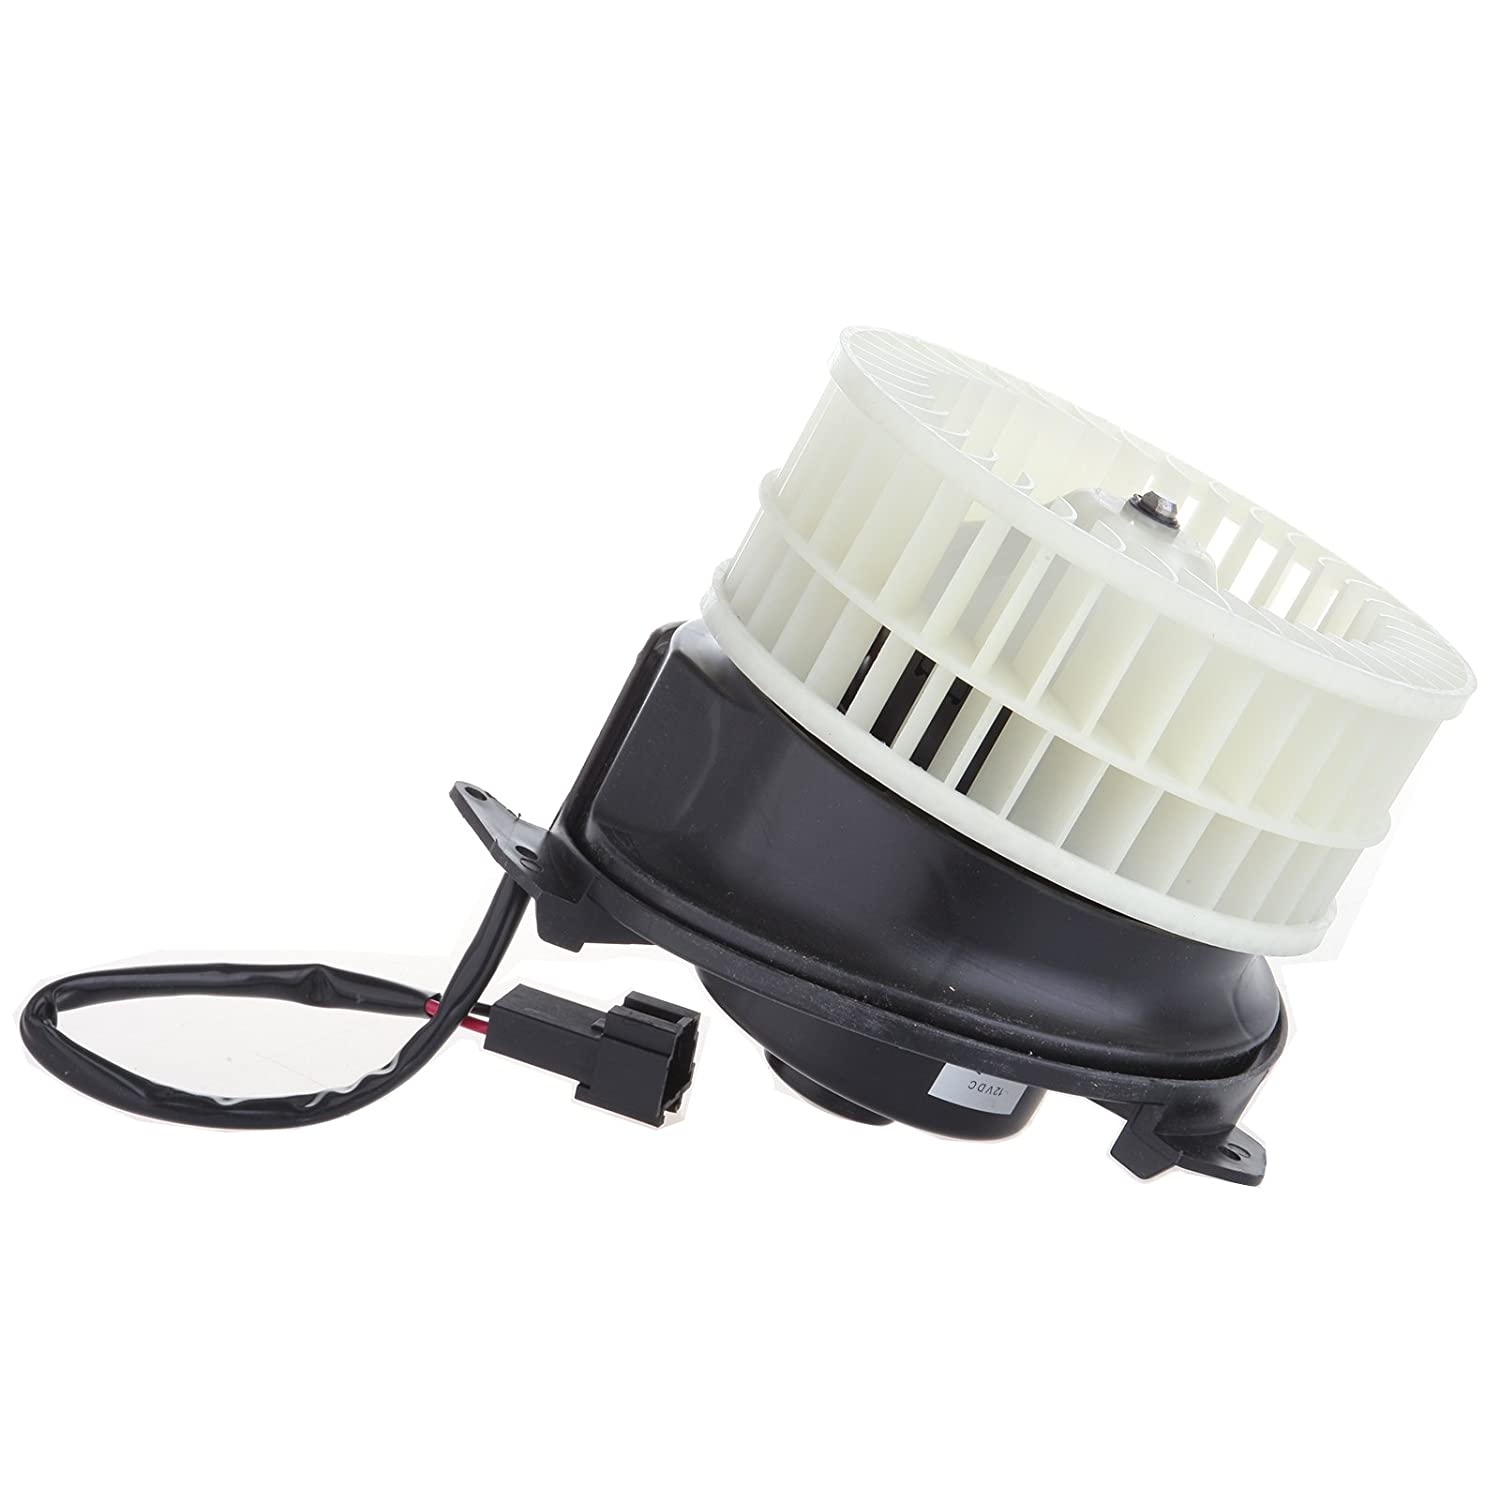 INEEDUP 615-00527 ABS Blower Motor Air Conditioning And Heating Fit for 1996-2000 Chrysler Town Country// 1996-2000 Dodge Caravan// 1996-2000 Dodge Grand Caravan// 1996-2000 Plymouth Grand Voyager